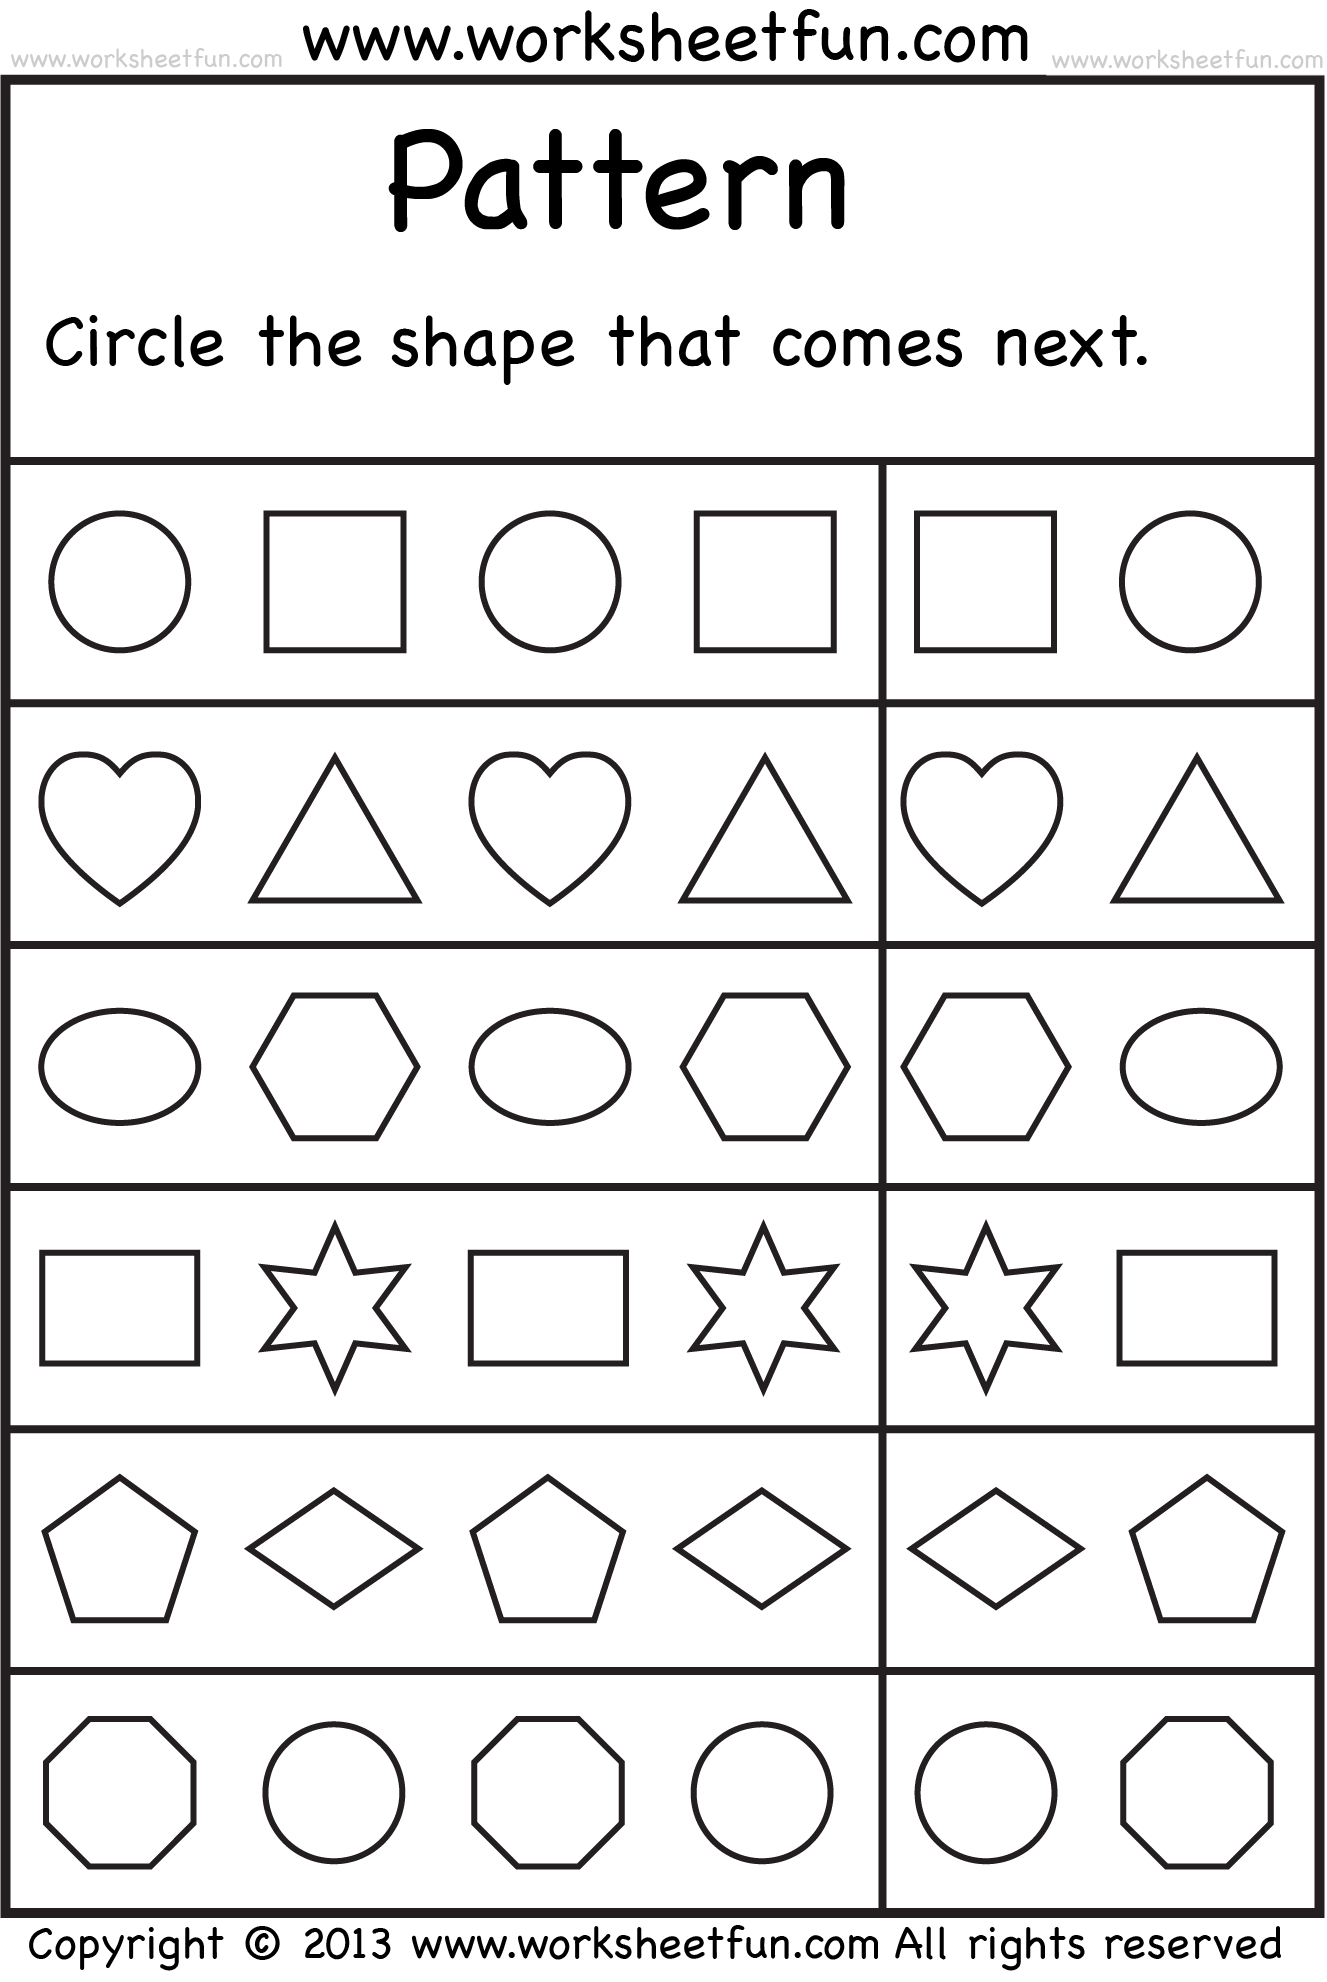 Weirdmailus  Picturesque  Images About School Worksheets On Pinterest  Number Words  With Magnificent  Images About School Worksheets On Pinterest  Number Words Alphabet Worksheets And Free Printable Kindergarten Worksheets With Attractive Esl Pronunciation Worksheets Also Electron Configuration Worksheet And Lots More In Addition Fraction Worksheets With Answers And Slope Worksheets Pdf As Well As Parallel And Perpendicular Worksheet Additionally State Capital Worksheet From Pinterestcom With Weirdmailus  Magnificent  Images About School Worksheets On Pinterest  Number Words  With Attractive  Images About School Worksheets On Pinterest  Number Words Alphabet Worksheets And Free Printable Kindergarten Worksheets And Picturesque Esl Pronunciation Worksheets Also Electron Configuration Worksheet And Lots More In Addition Fraction Worksheets With Answers From Pinterestcom